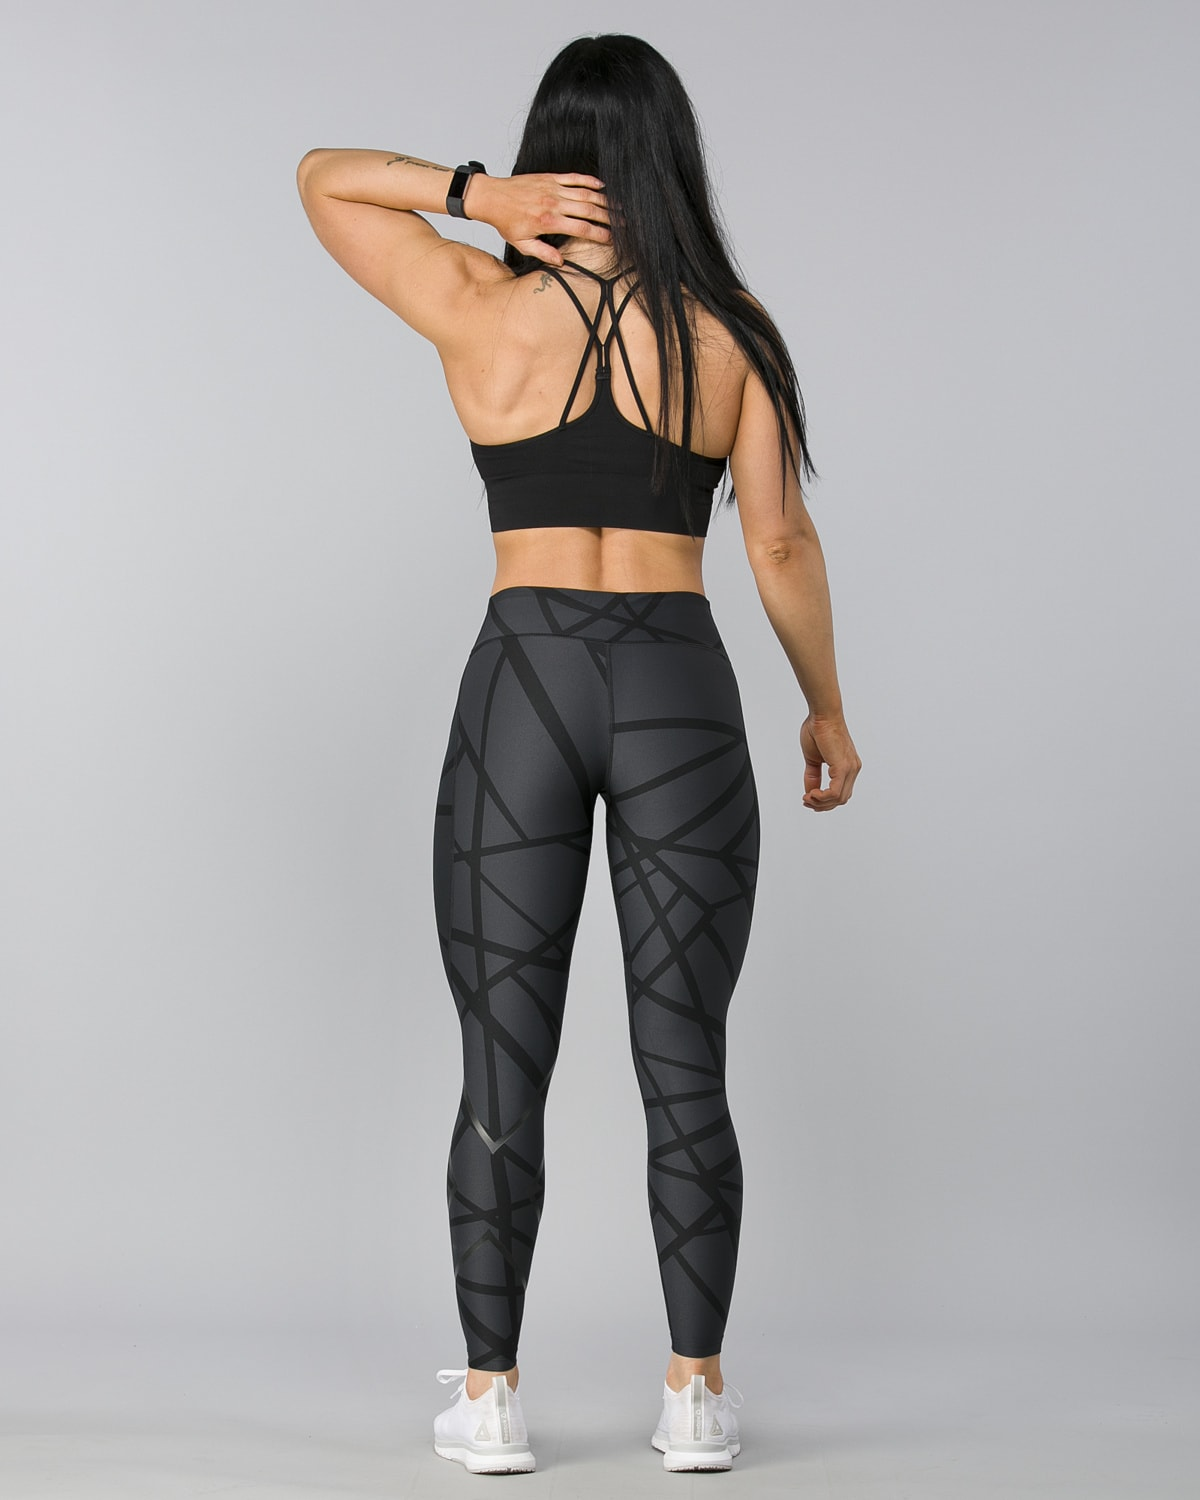 2XU-Print-Mid-Rise-Comp-Tights–Paint-Strokes-Nero7